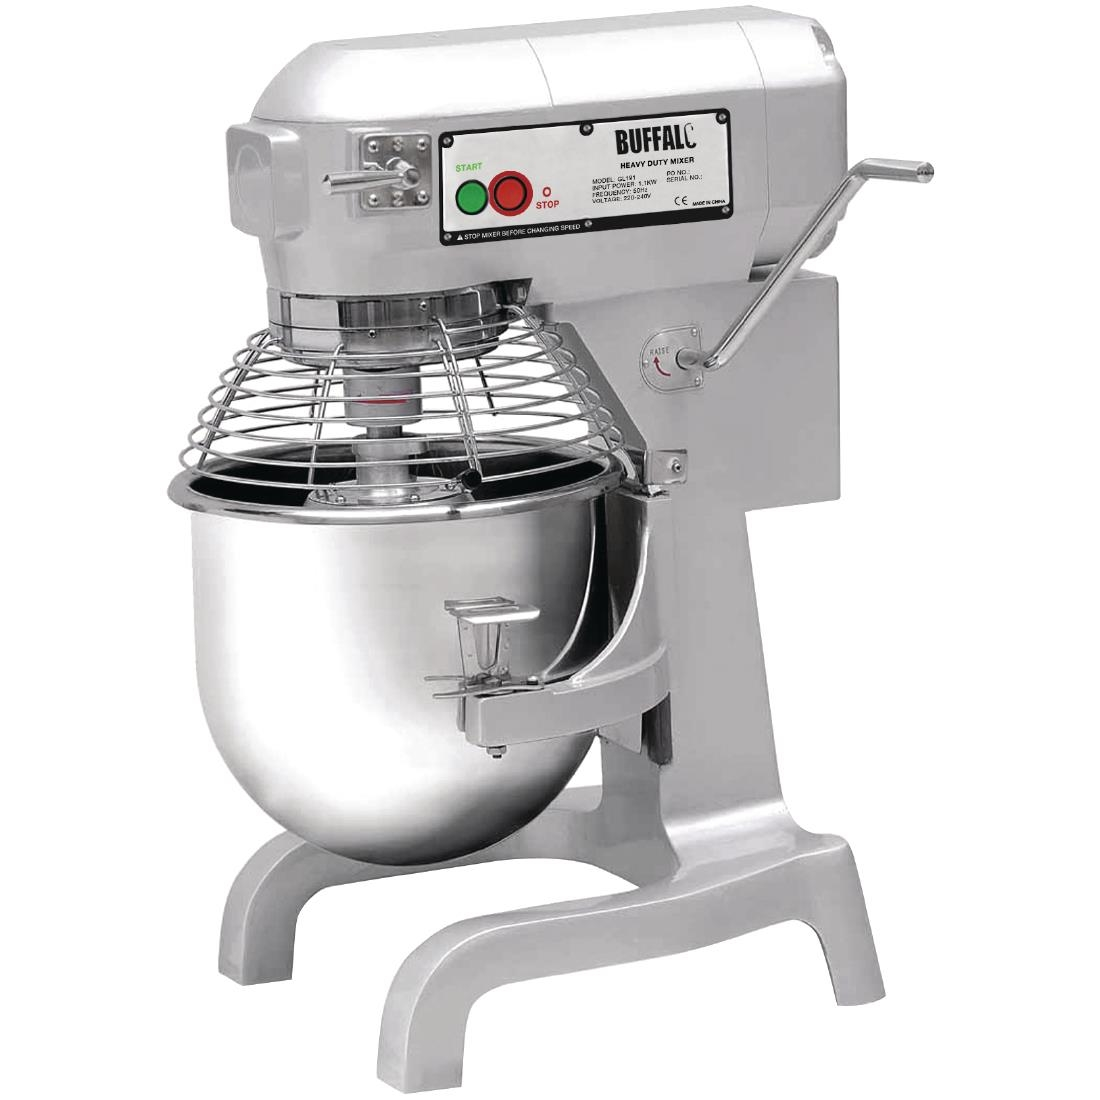 Buffalo Planetary Mixer 20ltr Gl191 Buy Online At Nisbets Dough Wiring Diagram 1100w